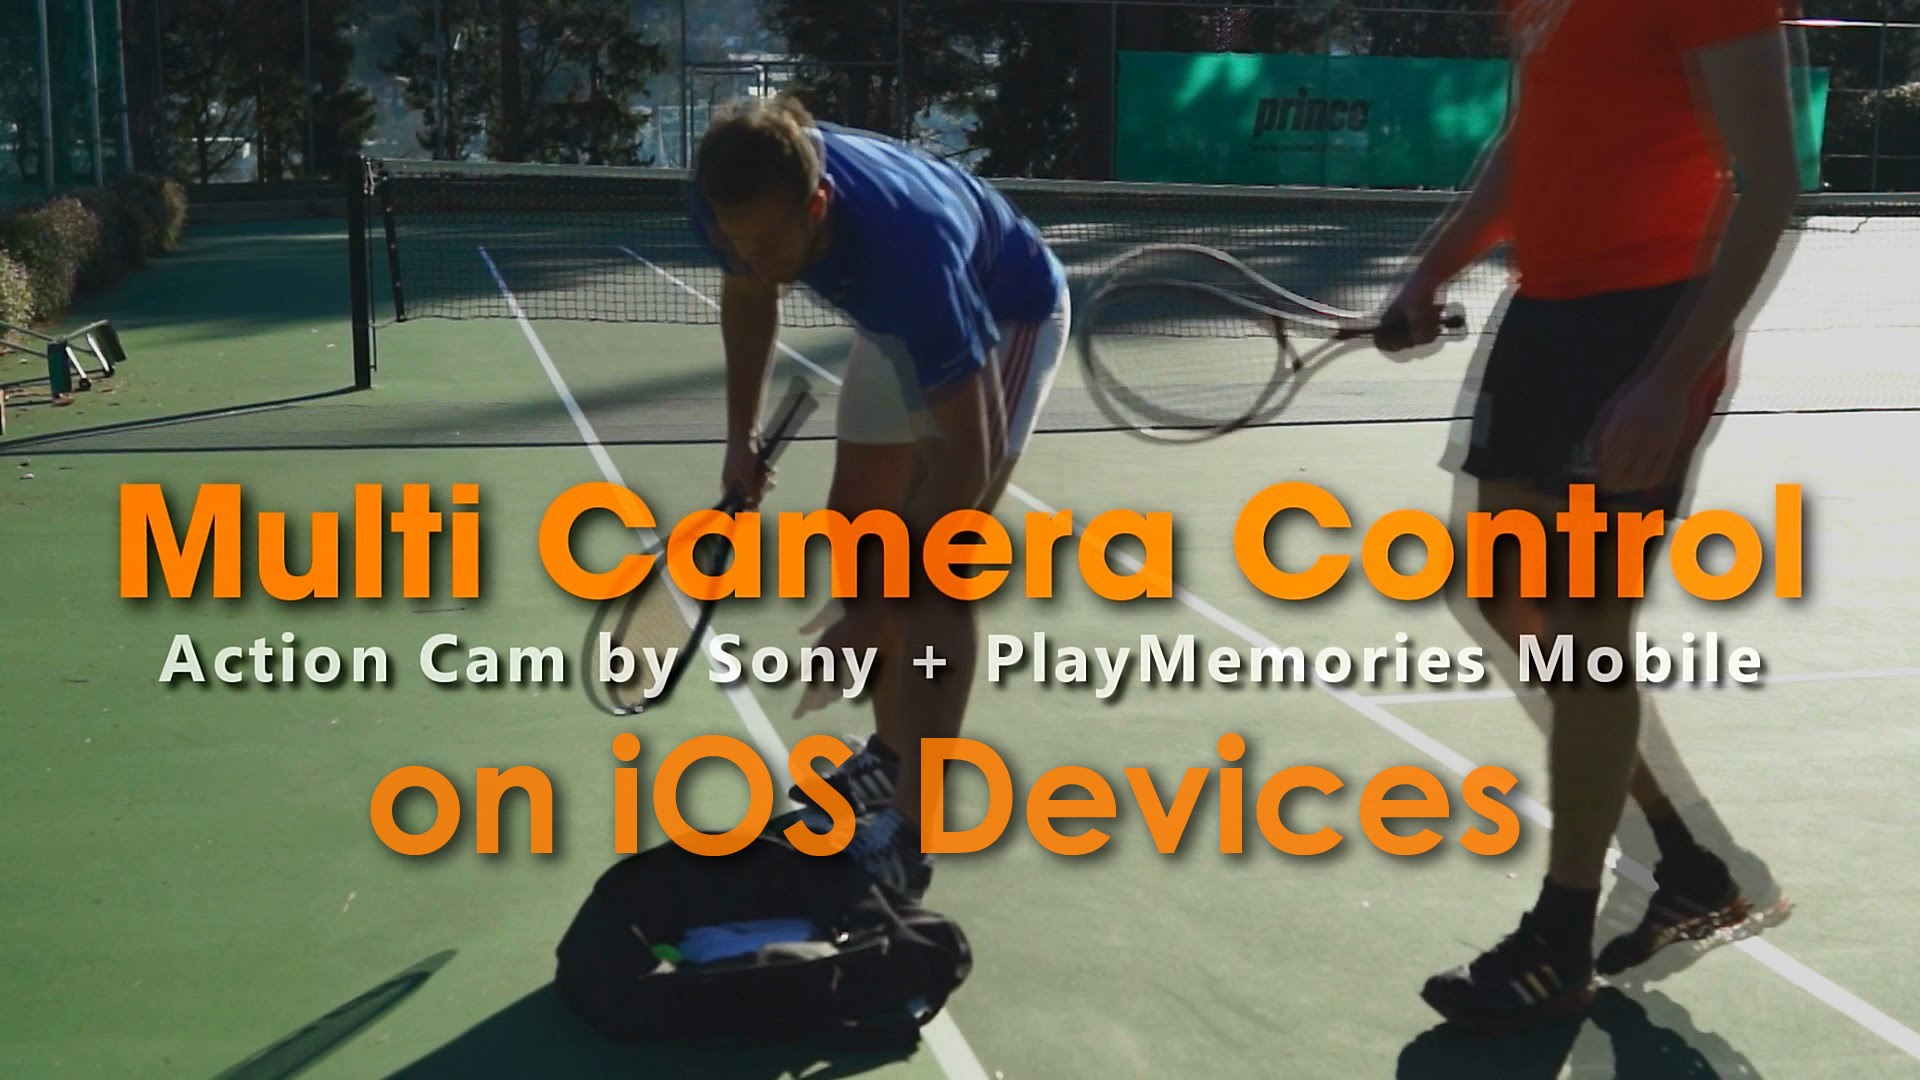 [For iOS] Multi Camera Control by PlayMemories Mobile | Action Cam | Sony